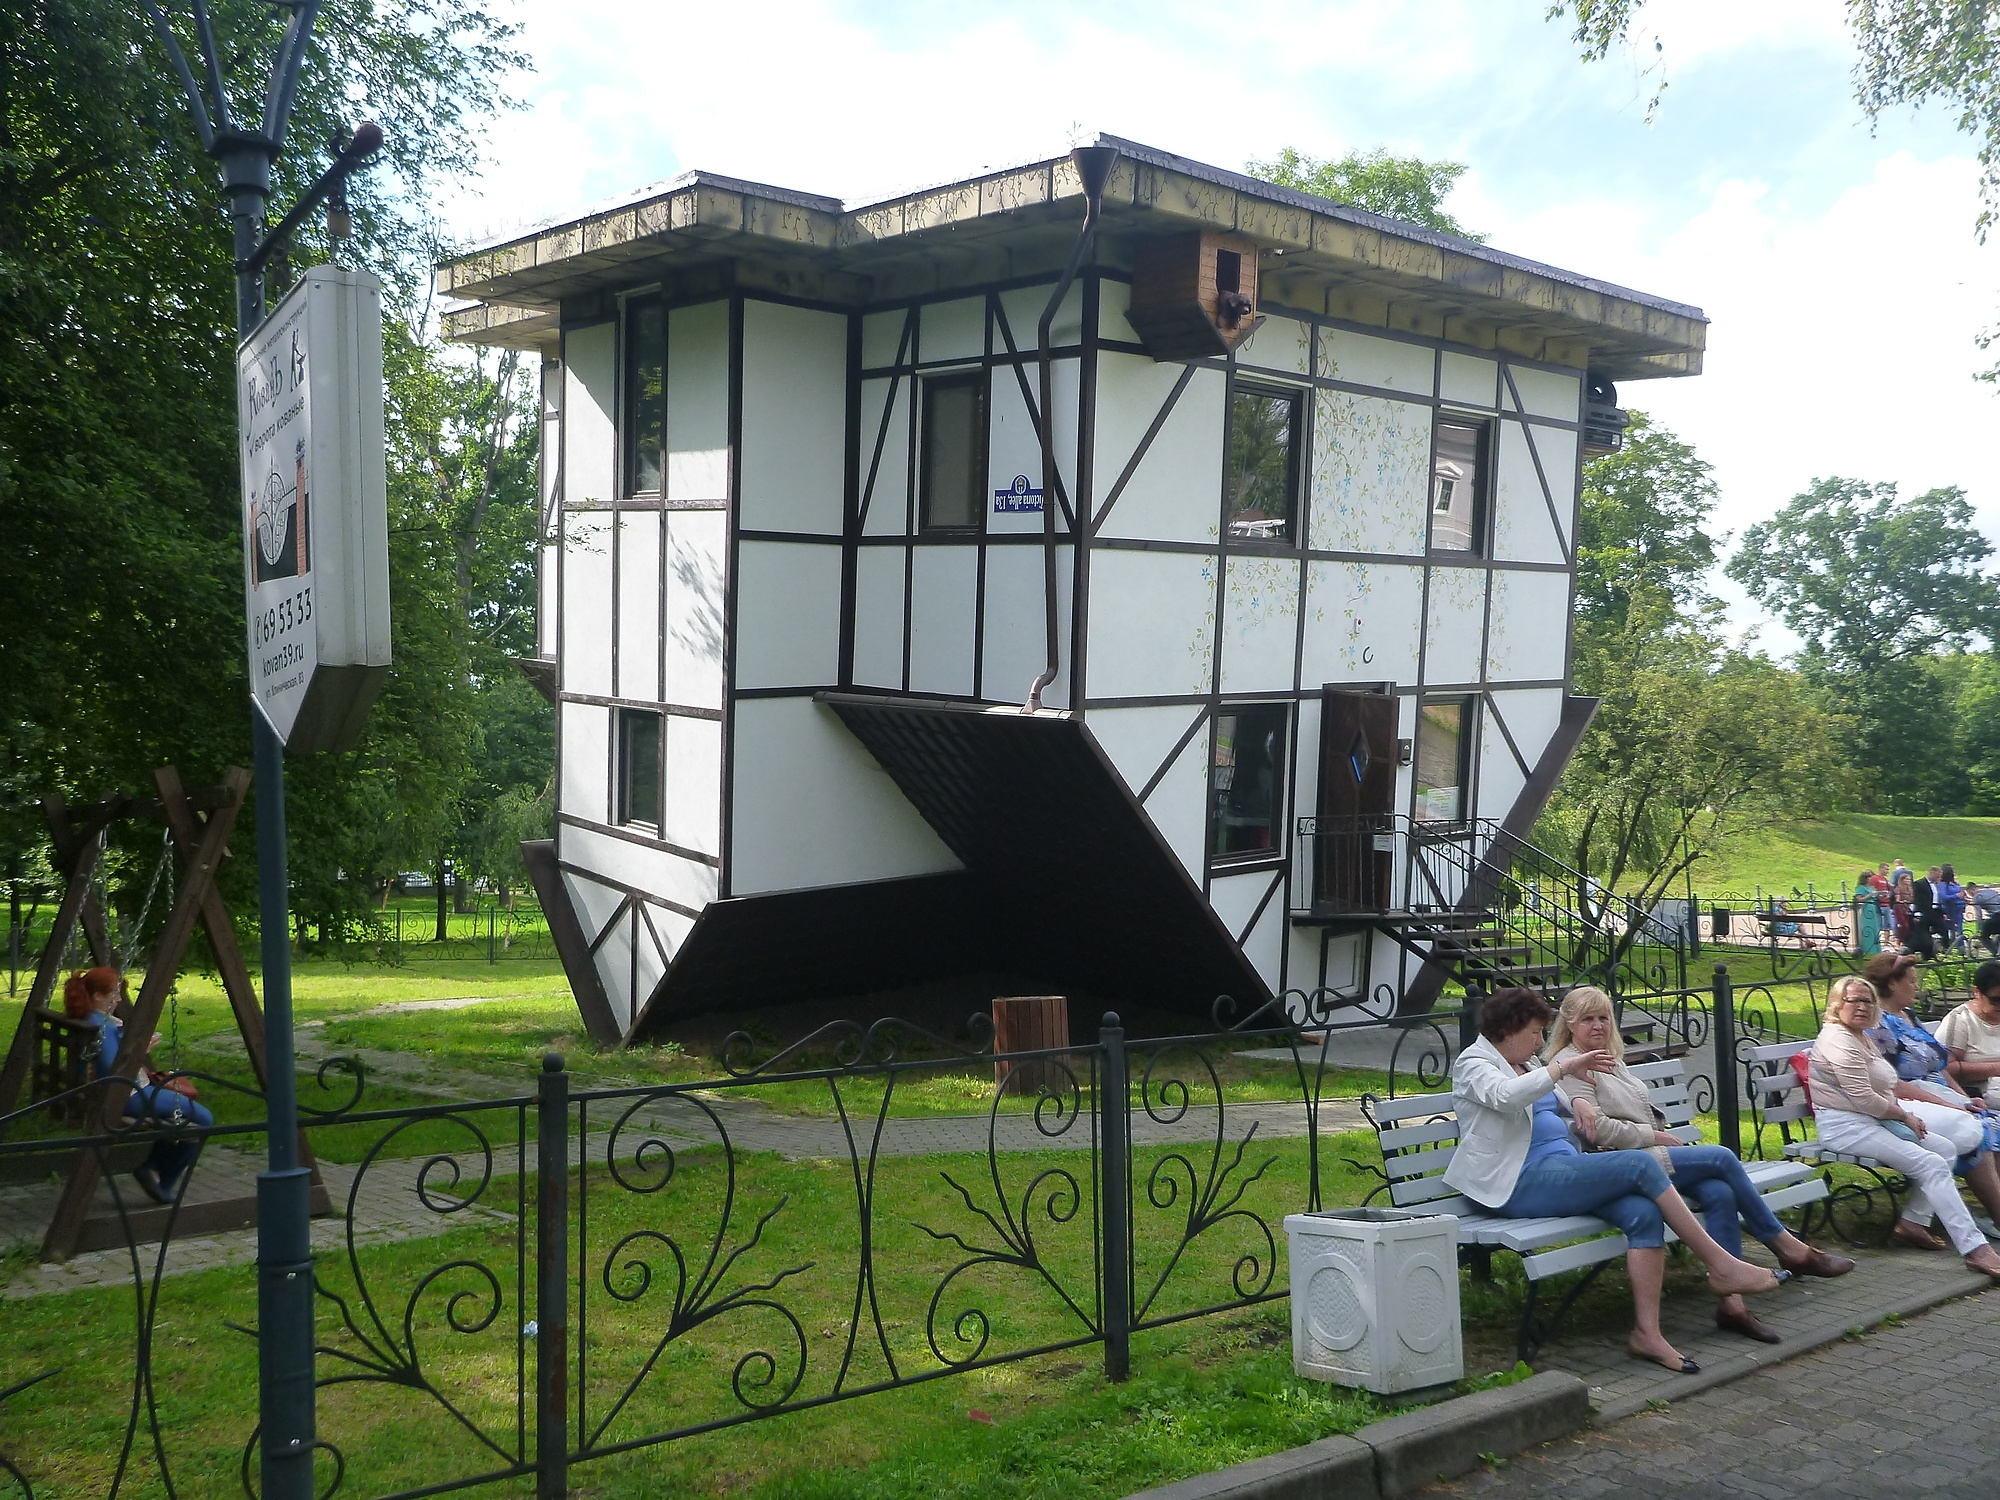 Backpacking in Kaliningrad - the wacky house that is upside down